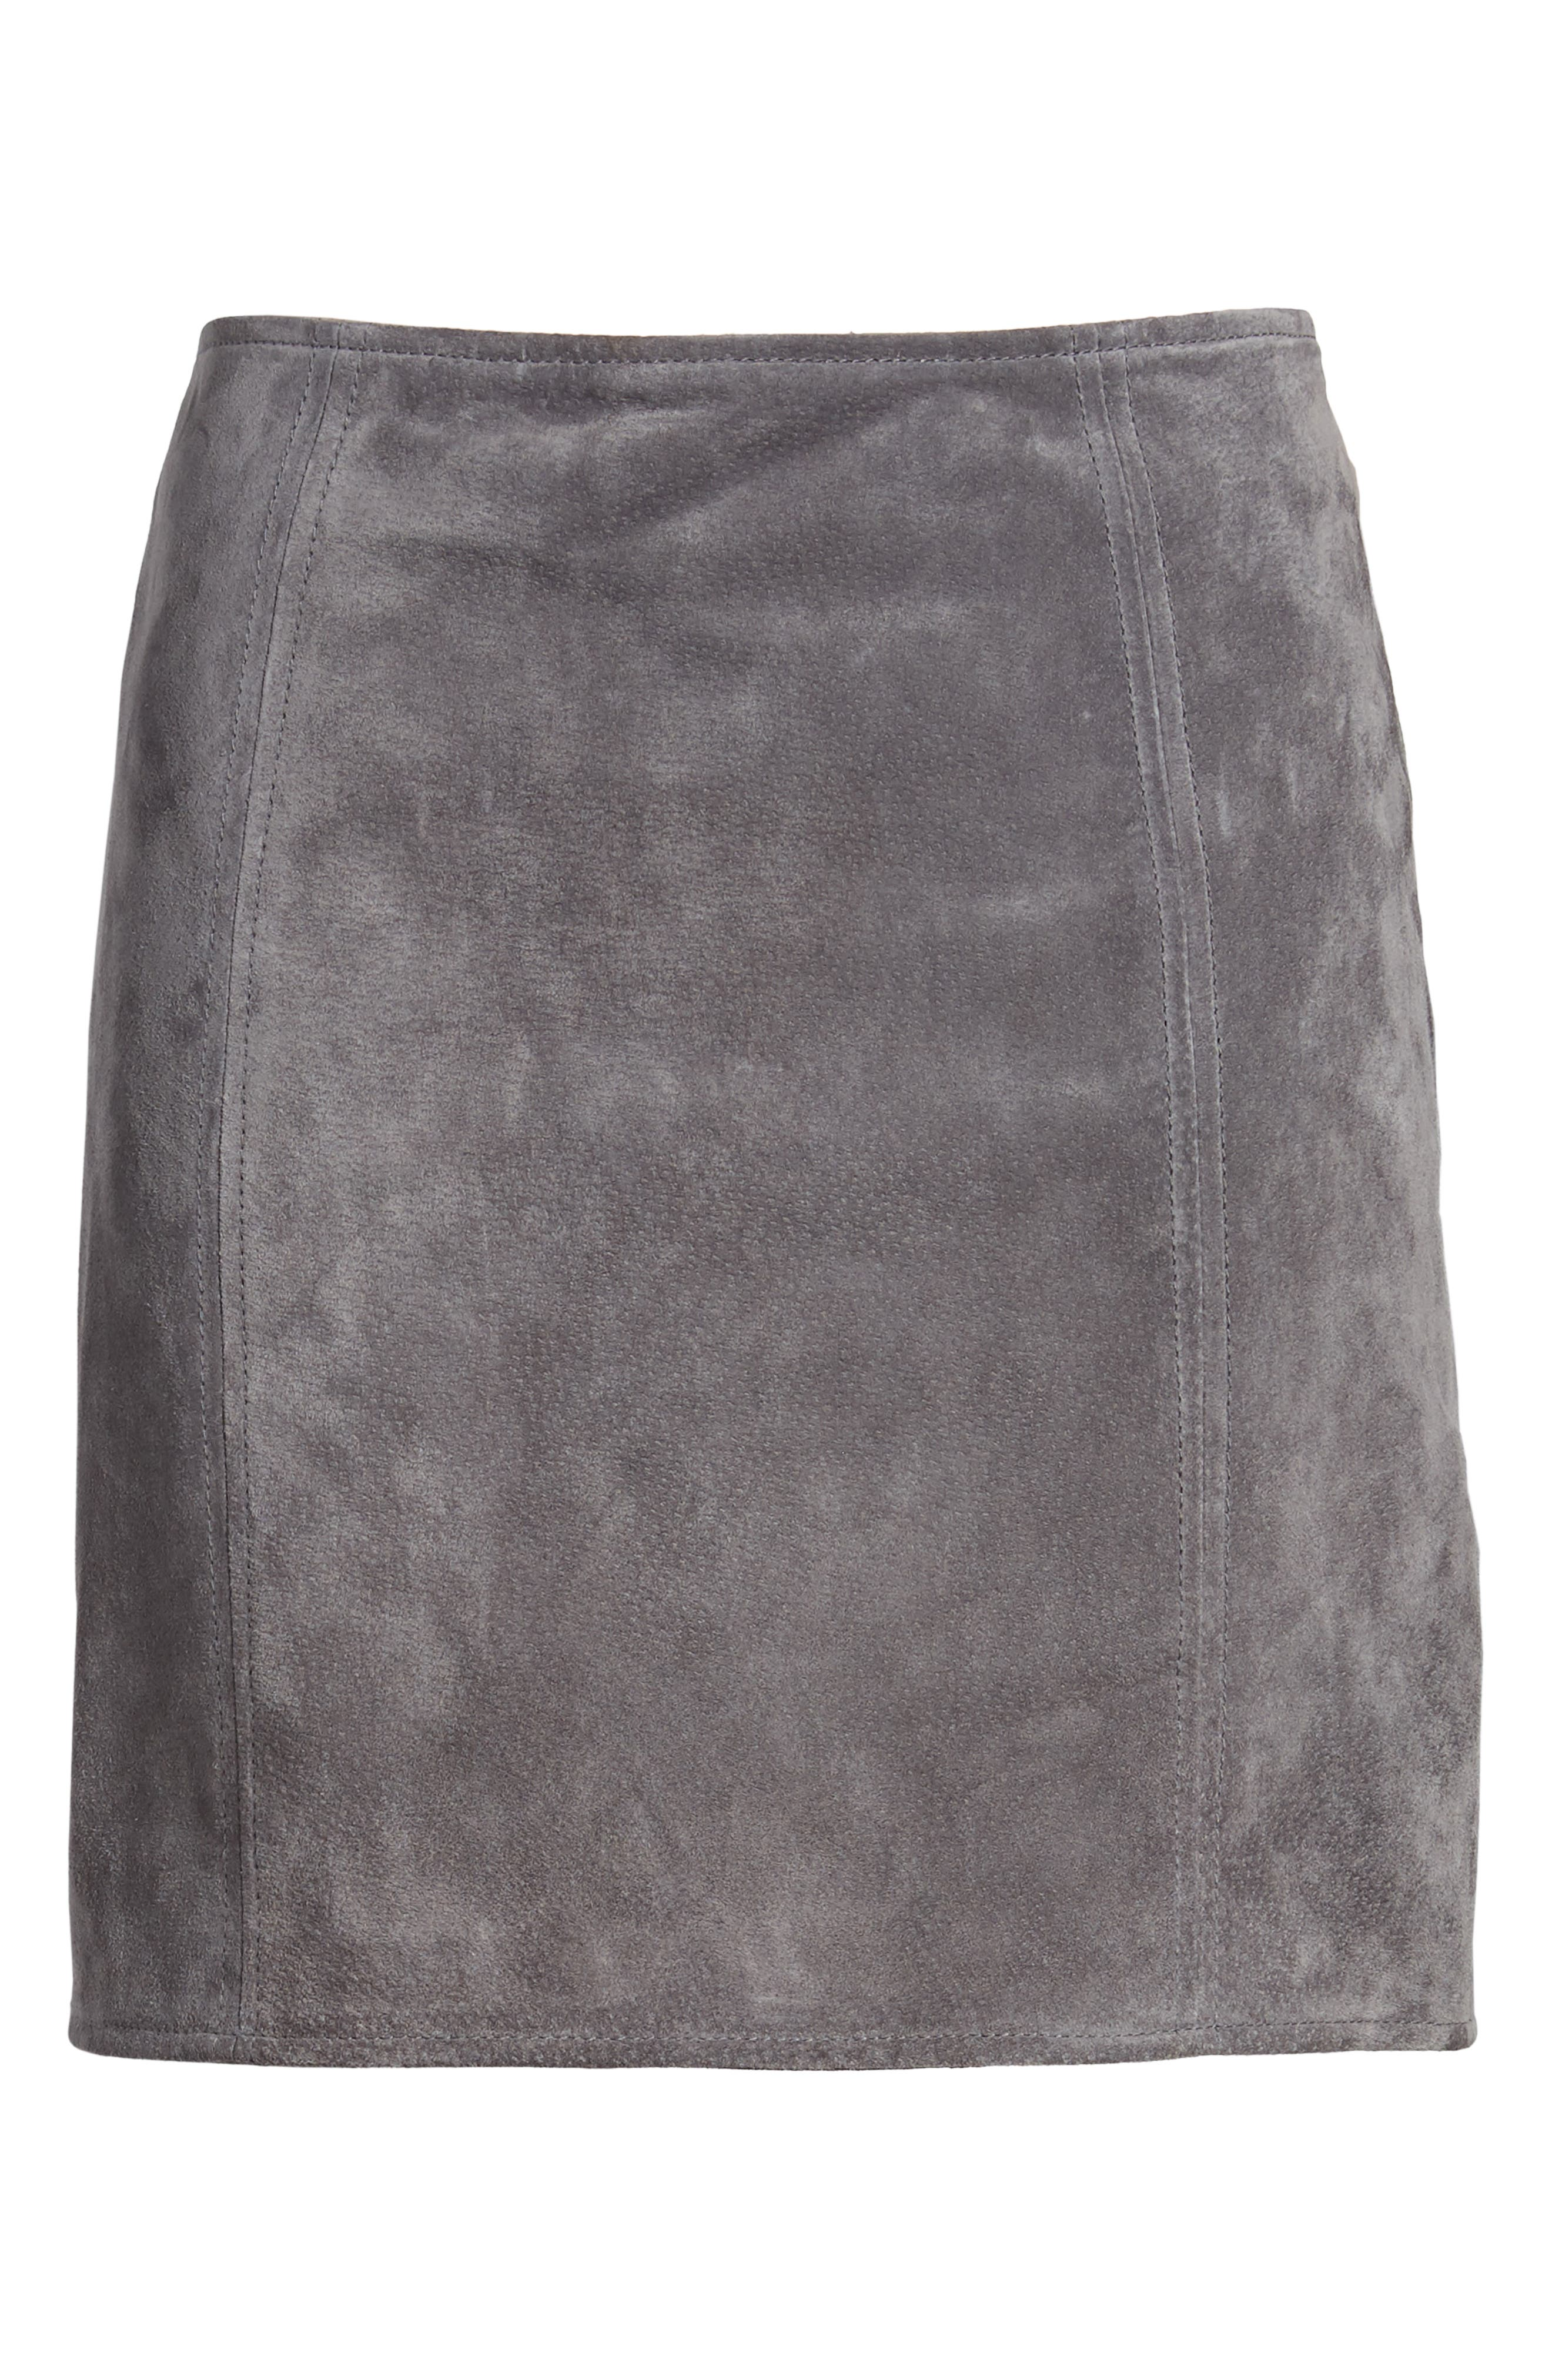 A-Line Suede Skirt,                             Alternate thumbnail 6, color,                             SILVER SCREEN